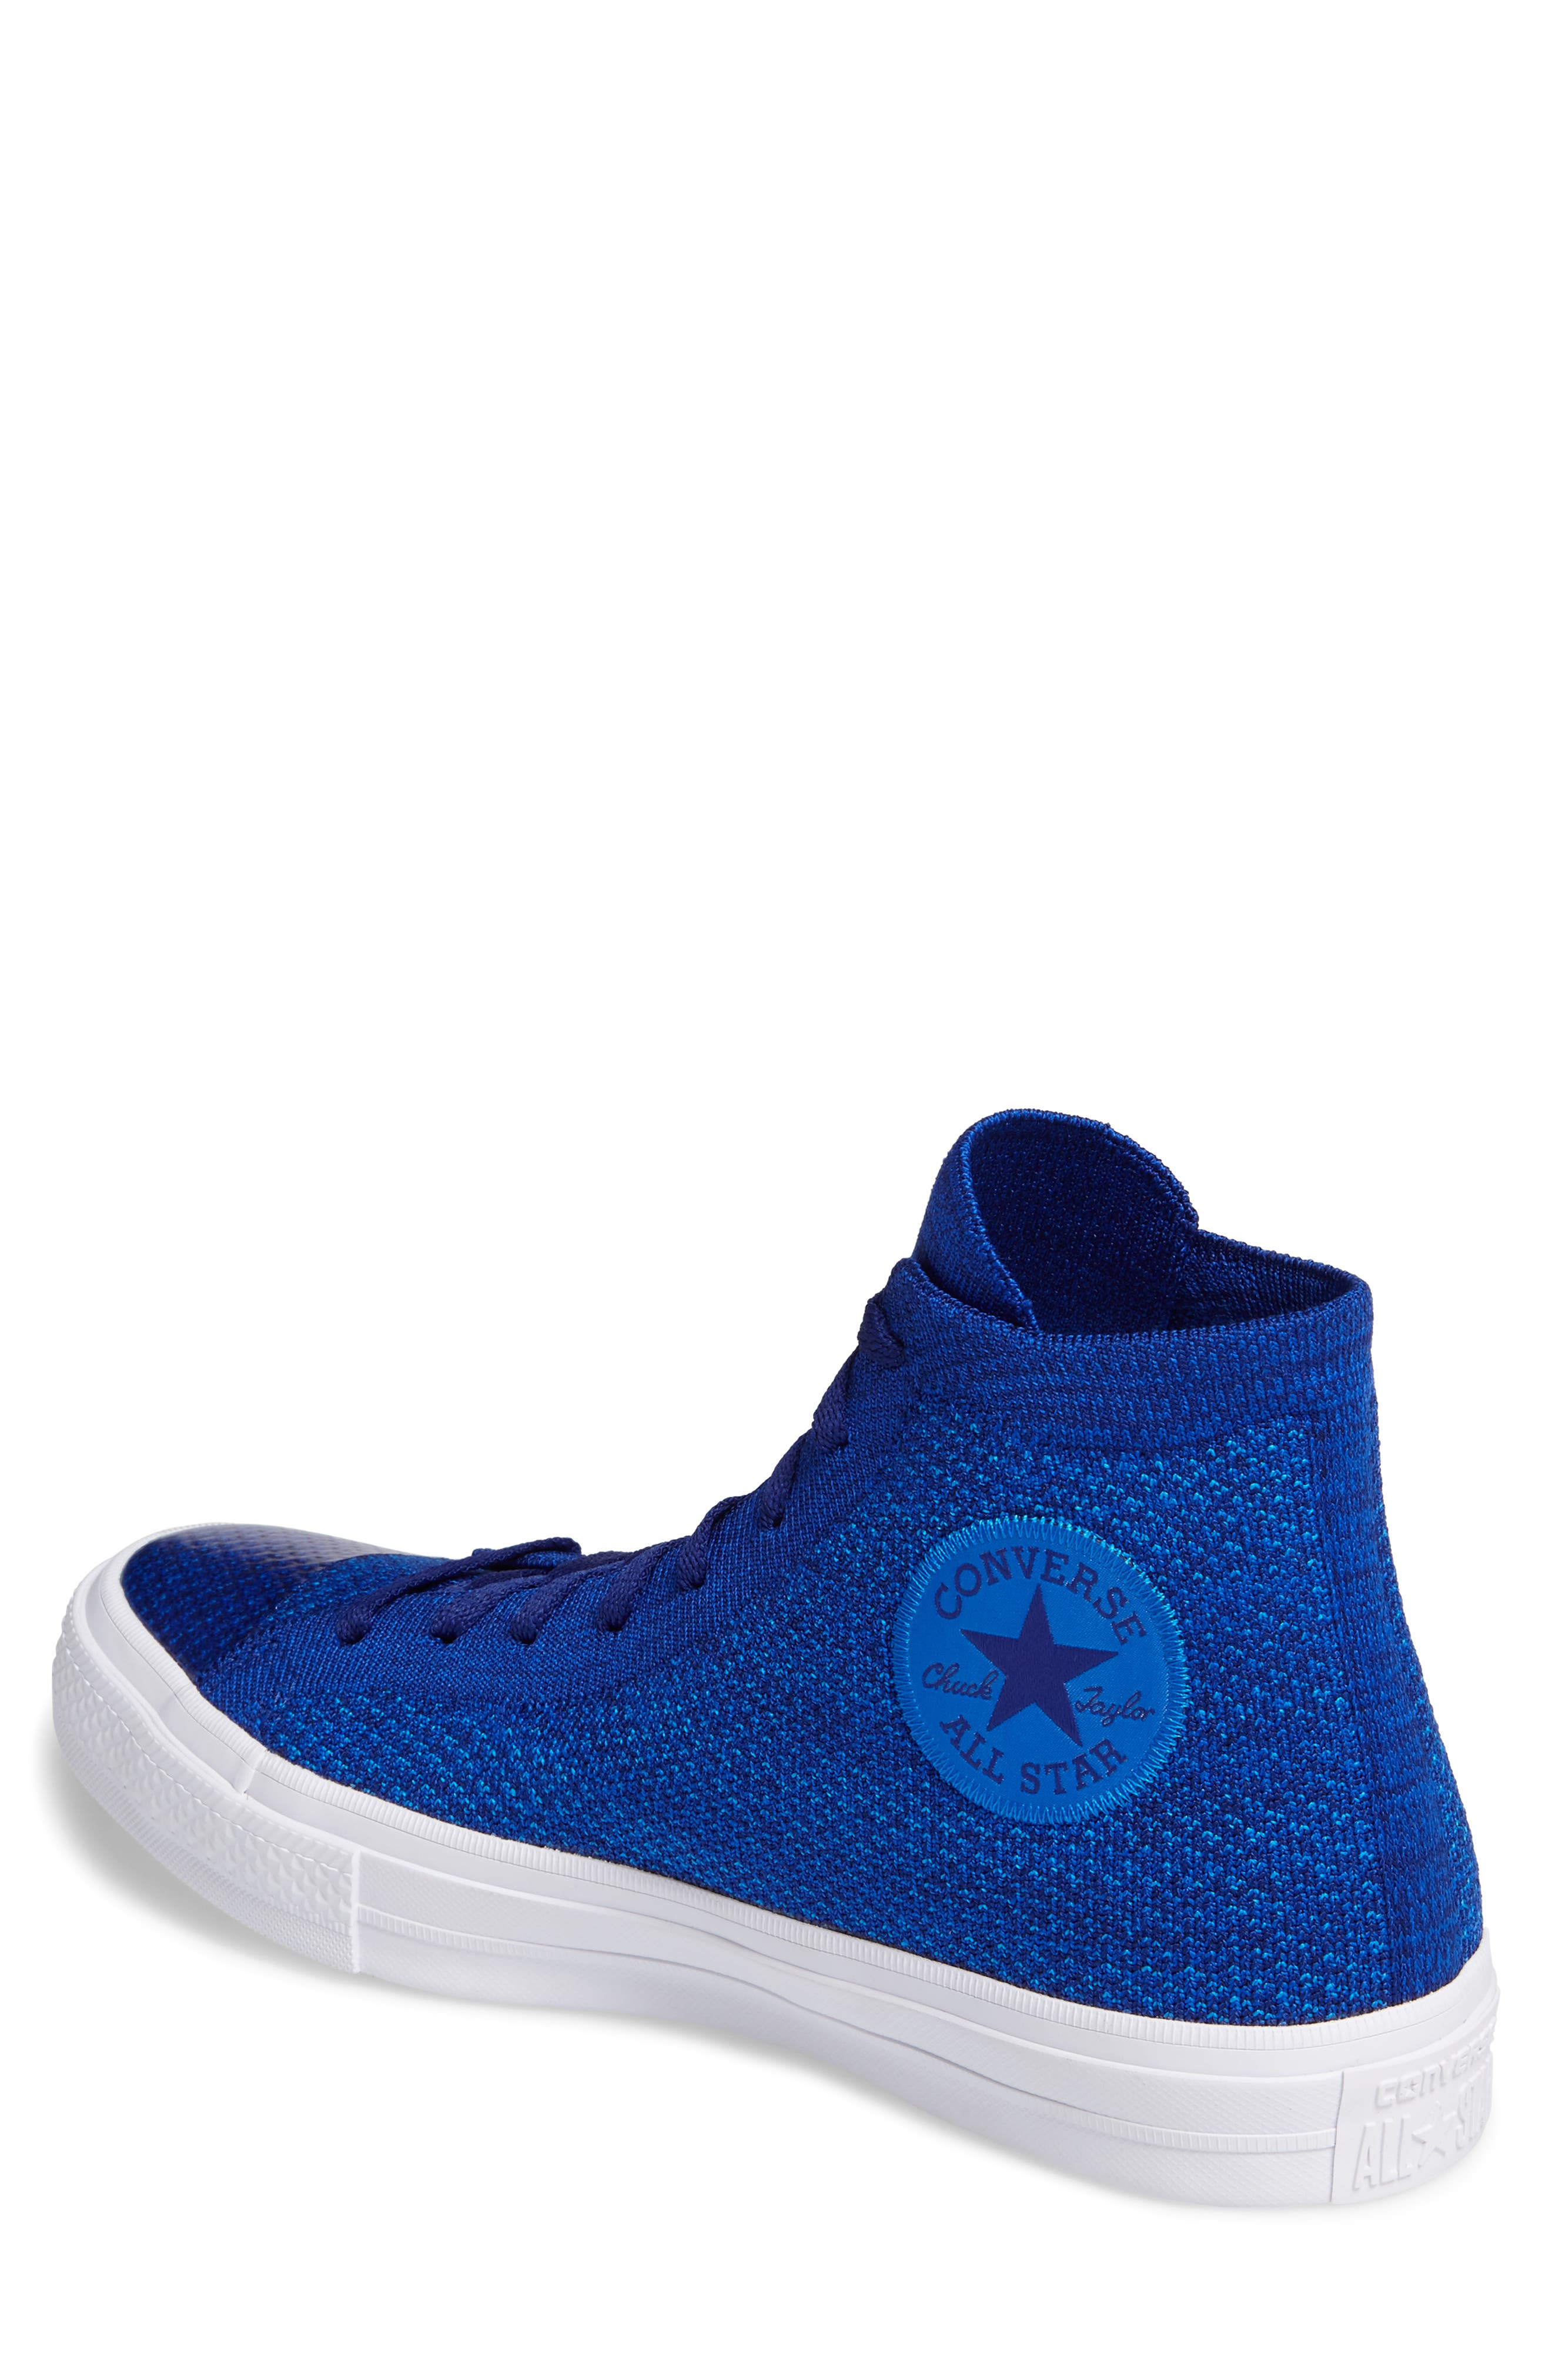 Chuck Taylor<sup>®</sup> All Star<sup>®</sup> Flyknit Hi Sneaker,                             Alternate thumbnail 11, color,